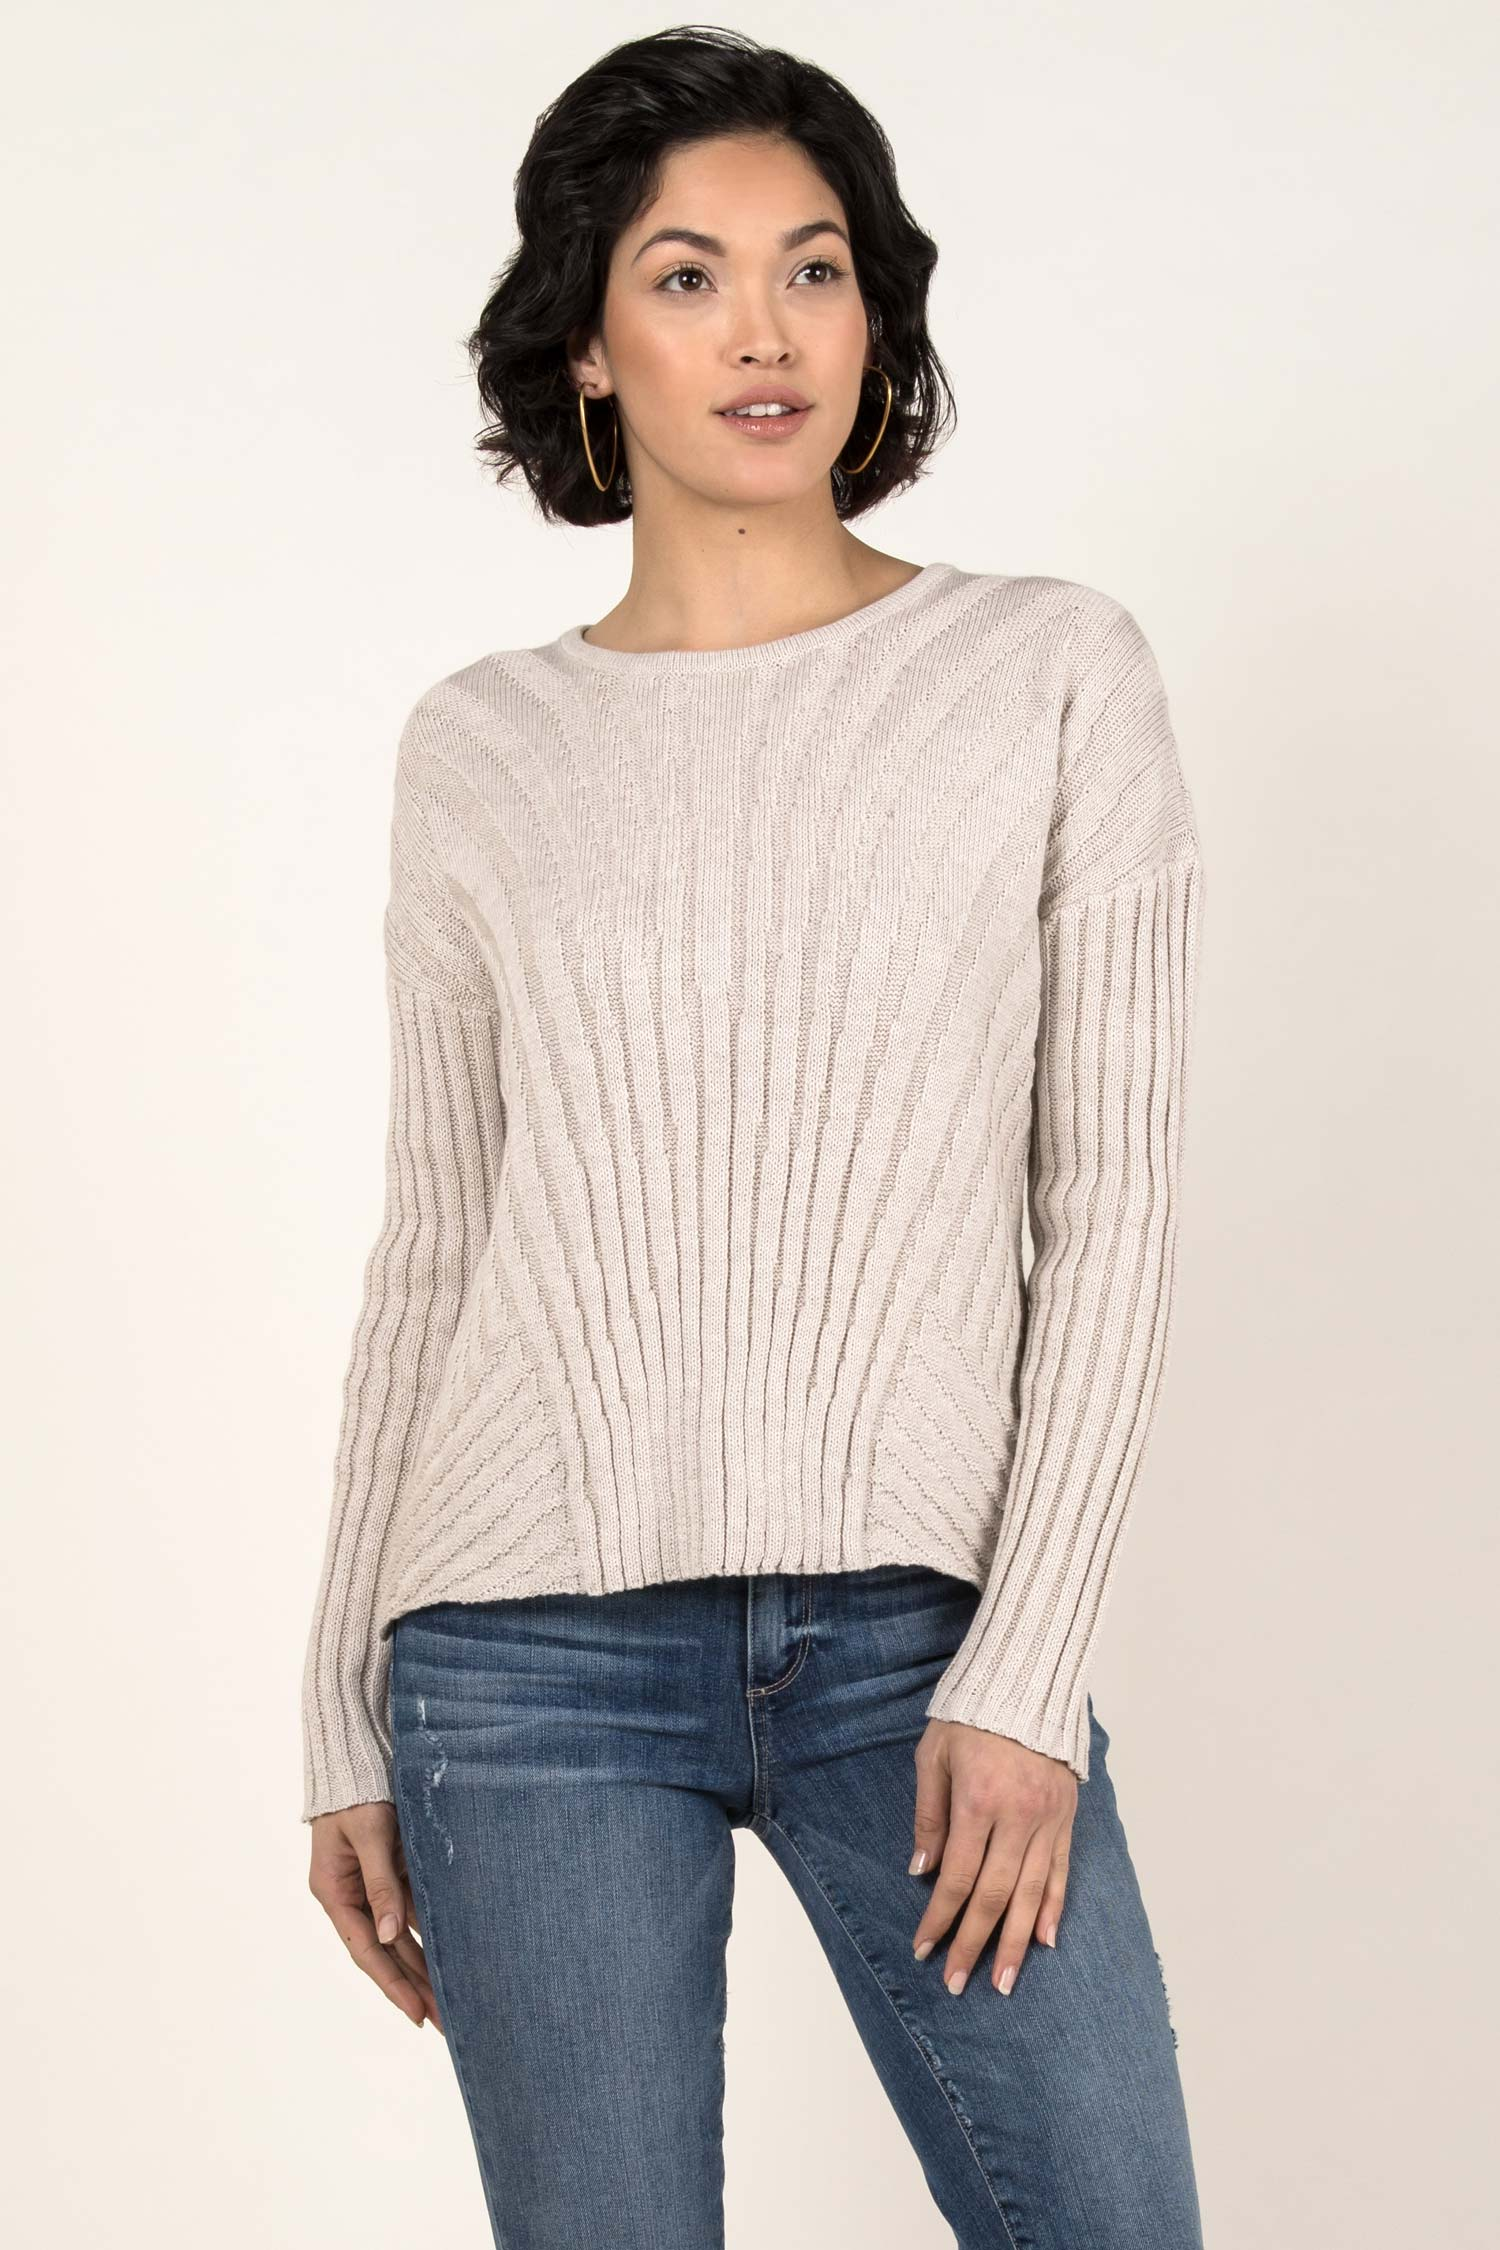 Womens Organic Cotton Sweater | Boxy Rib Pullover | Box Top Sweater | Ivory